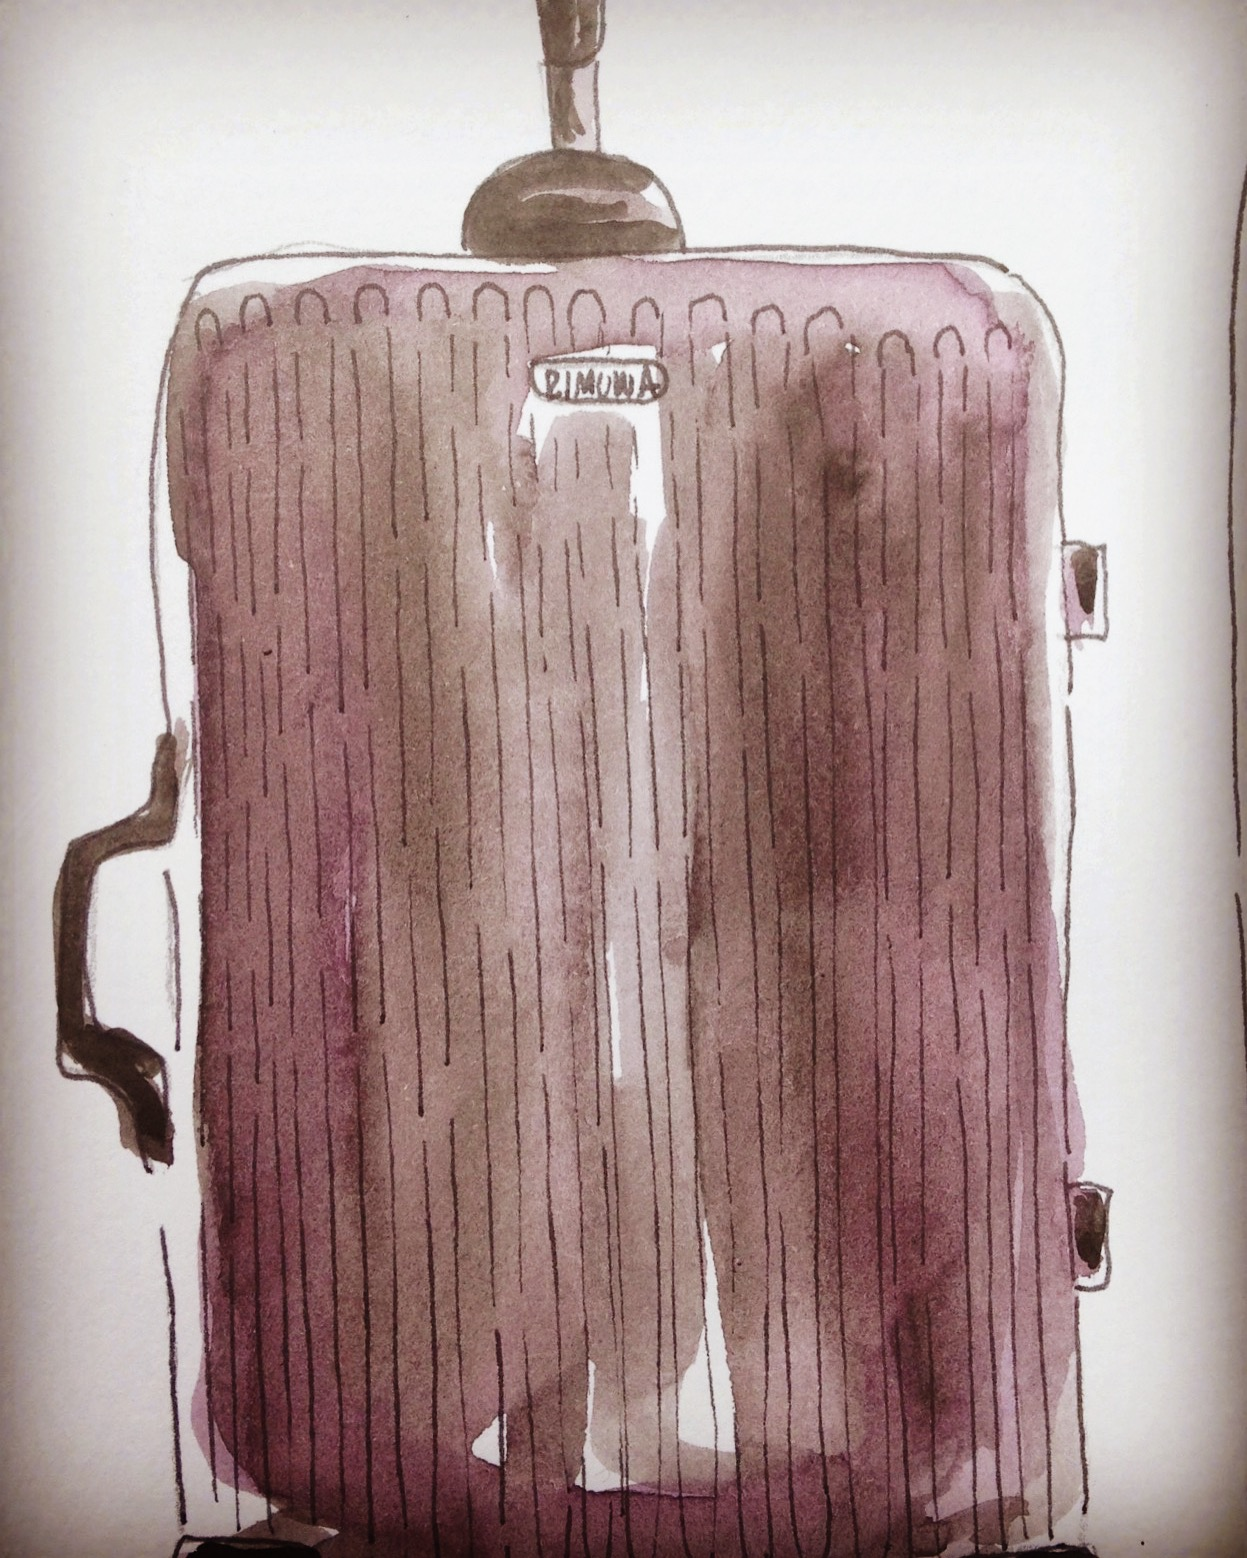 Rimowa Salsa suitcase available  here.